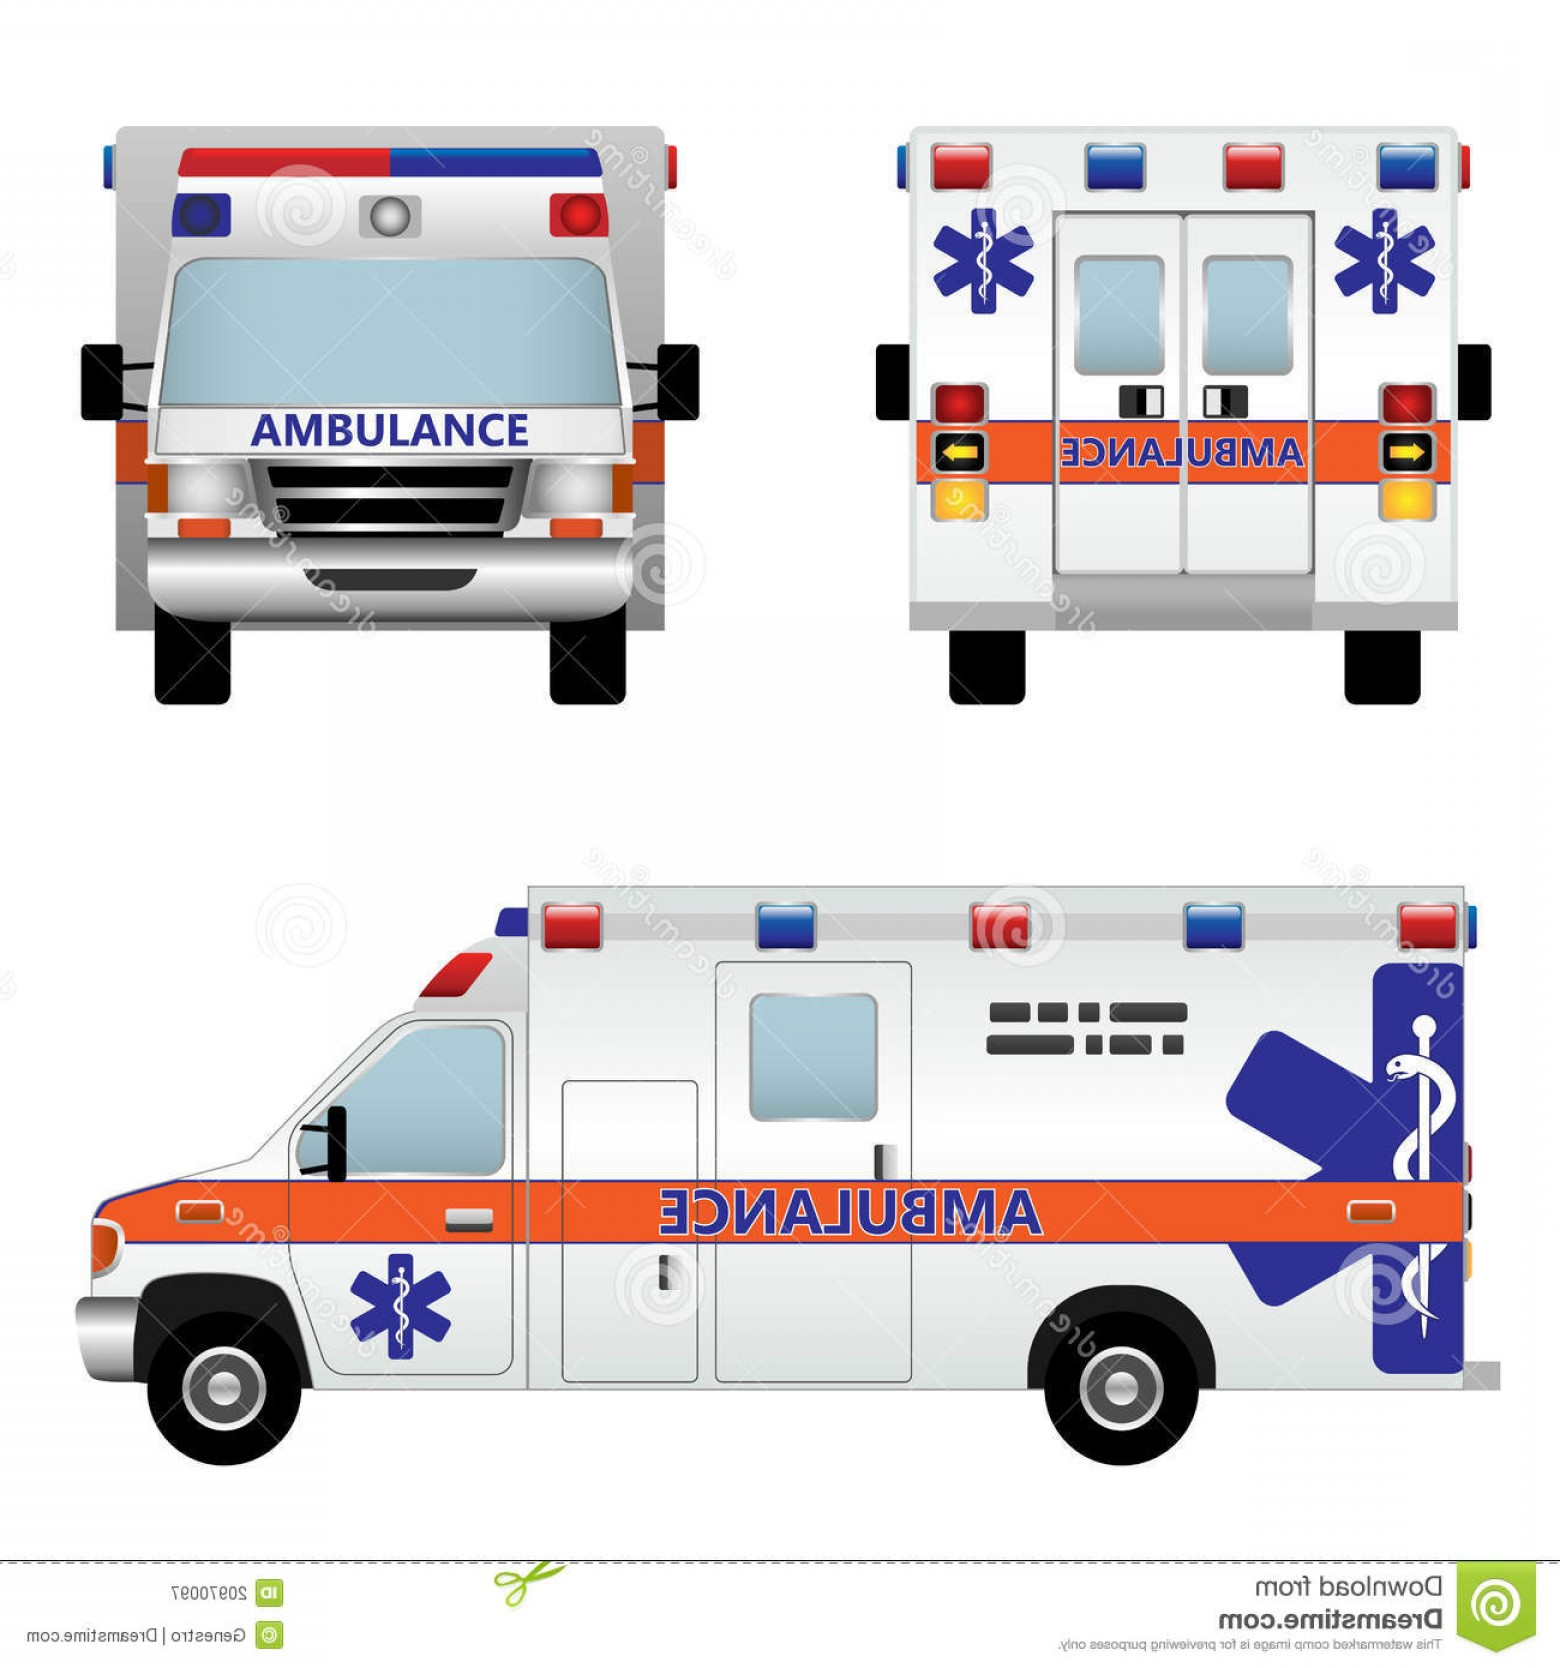 Car Vector Front Elevation: Royalty Free Stock Photography Ambulance Car Image